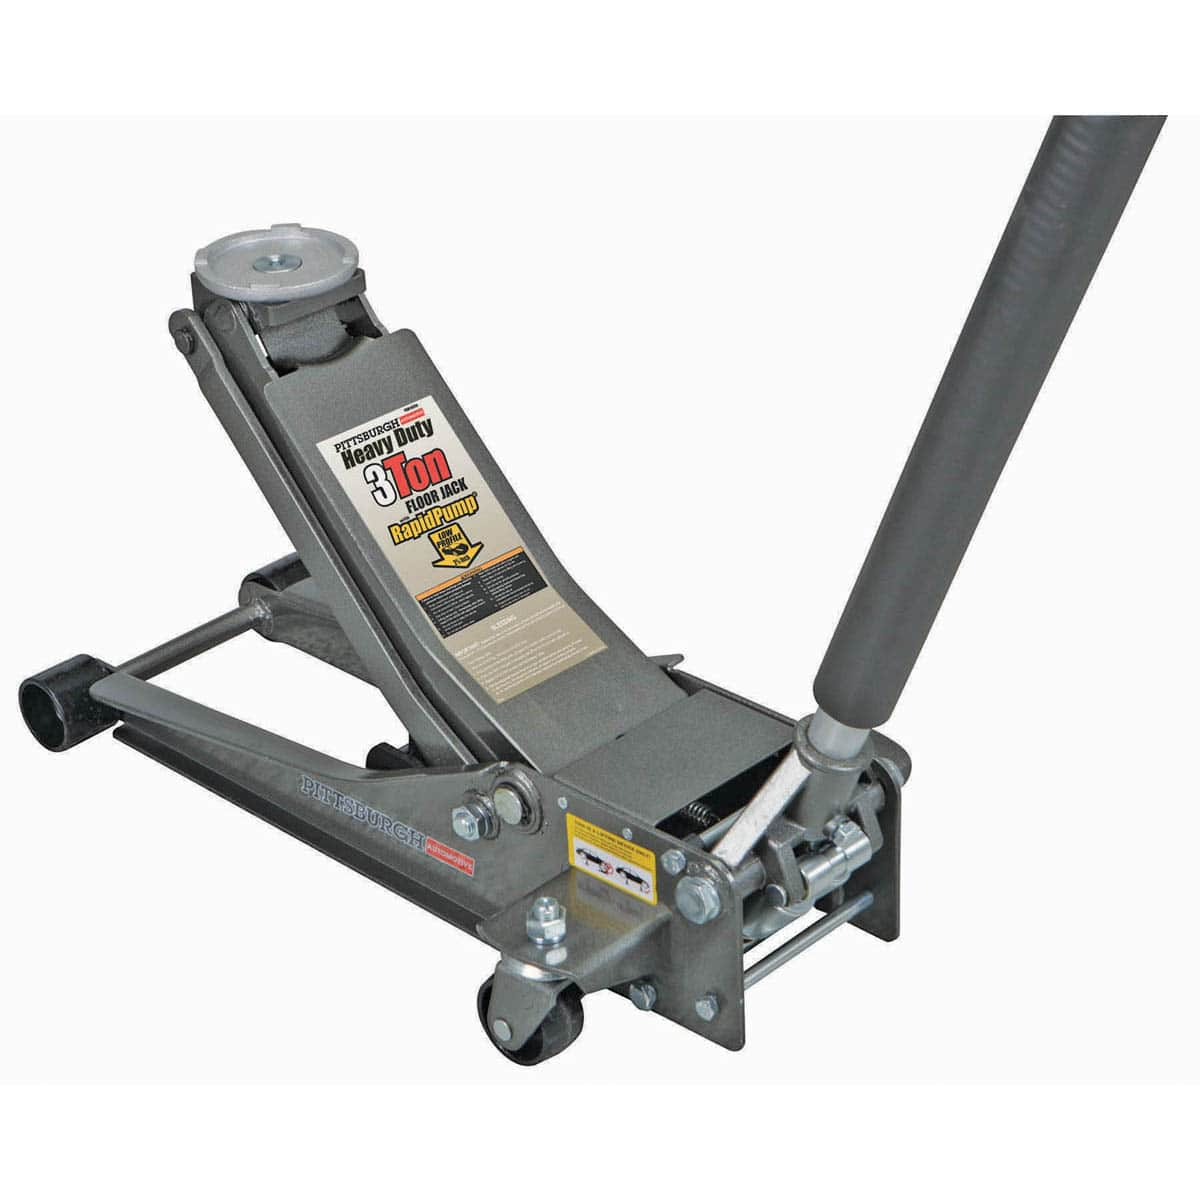 Pittsburgh 3 ton Low Profile Steel Heavy Duty Floor Jack $79.99 @ Harbor Freight